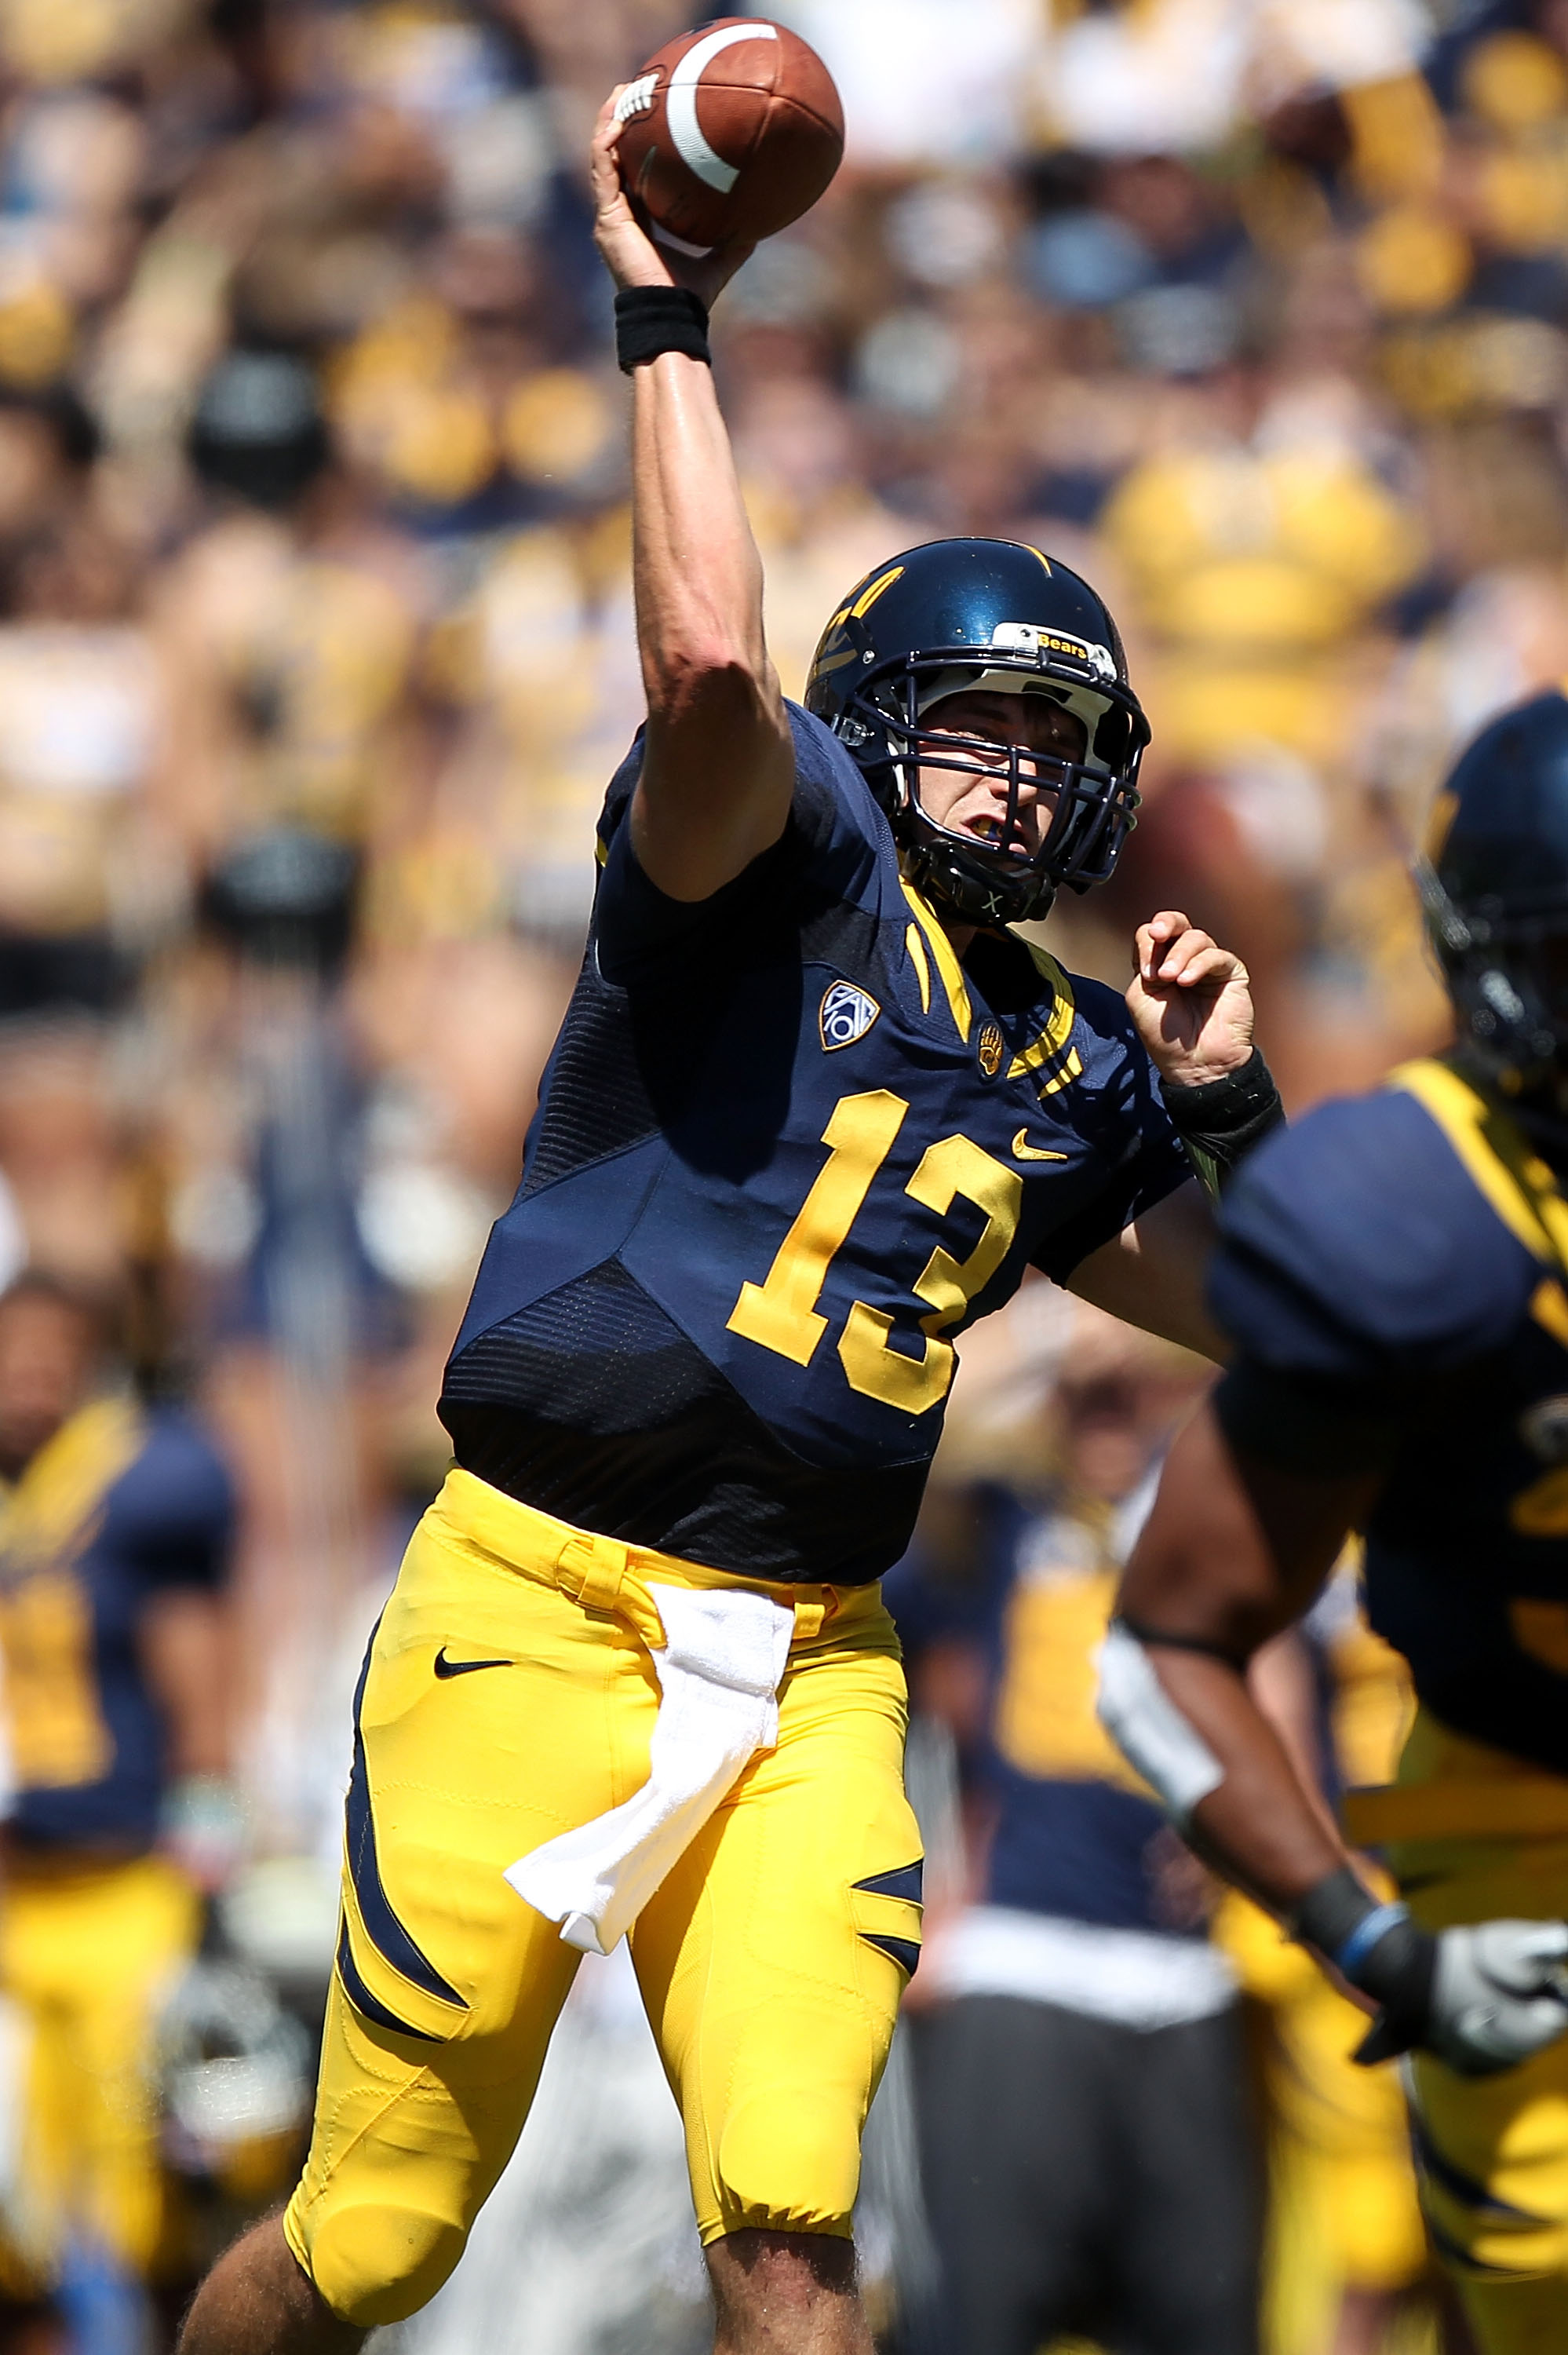 BERKELEY, CA - SEPTEMBER 11:  Kevin Riley #13 of the California Golden Bears passes against the Colorado Buffaloes at California Memorial Stadium on September 11, 2010 in Berkeley, California.  (Photo by Jed Jacobsohn/Getty Images)